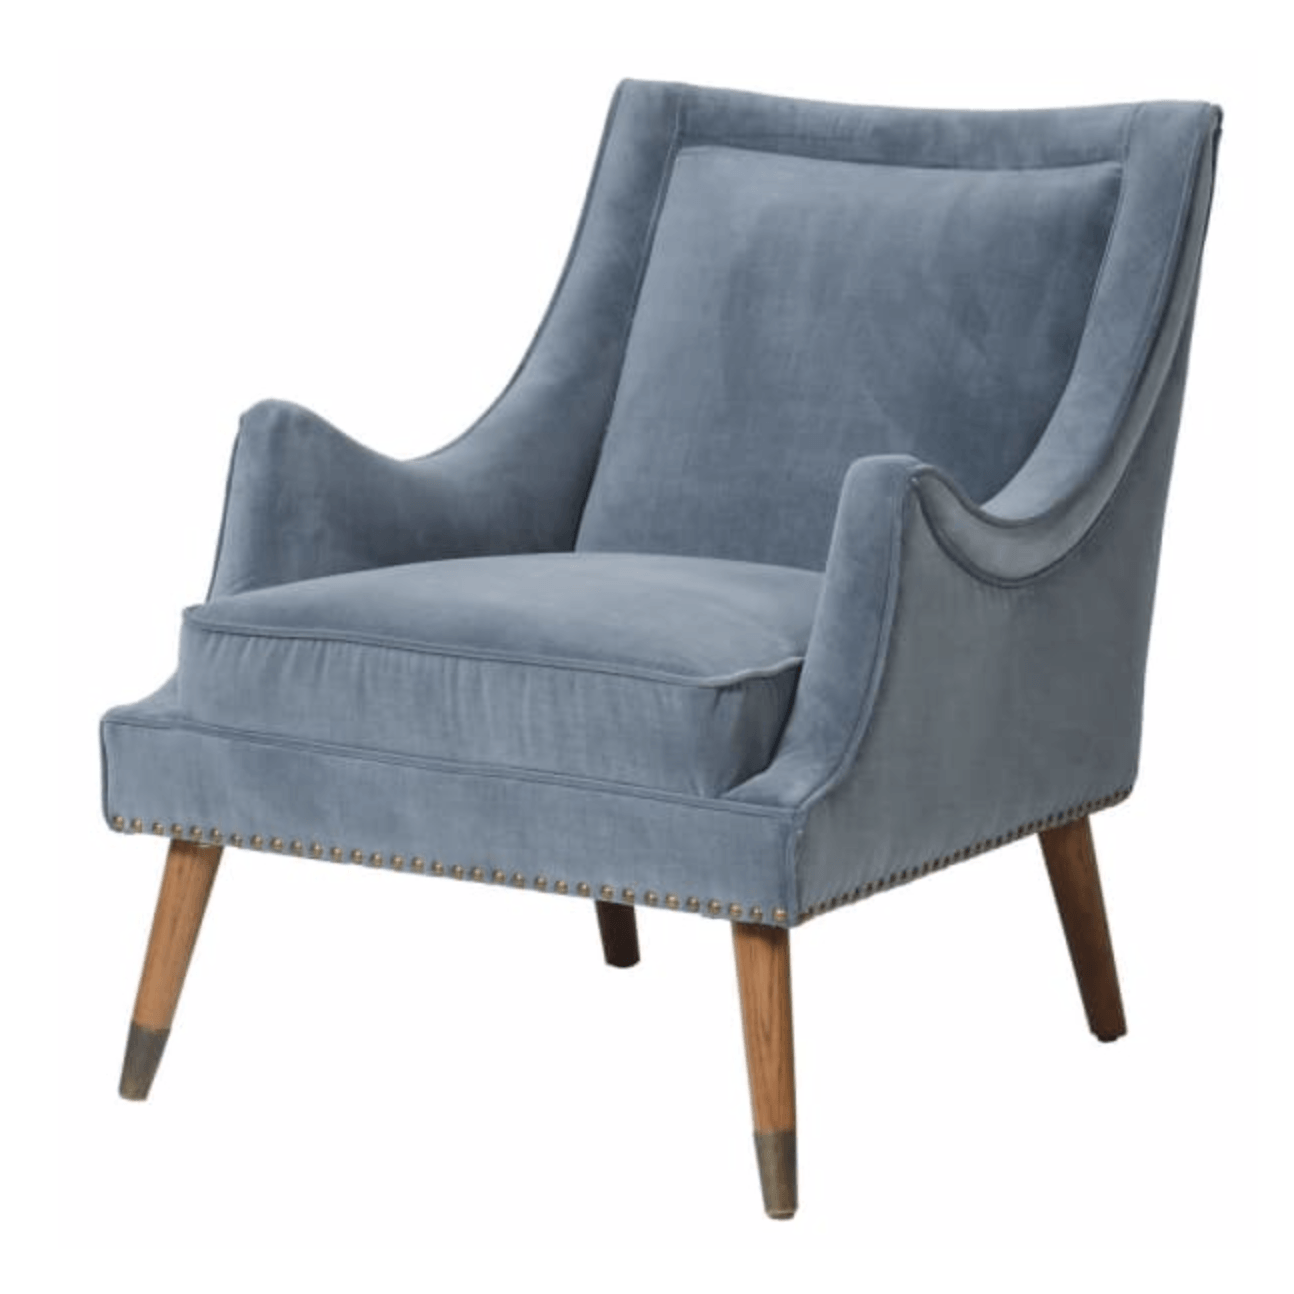 Hudson Occasional Chair - Barnbury